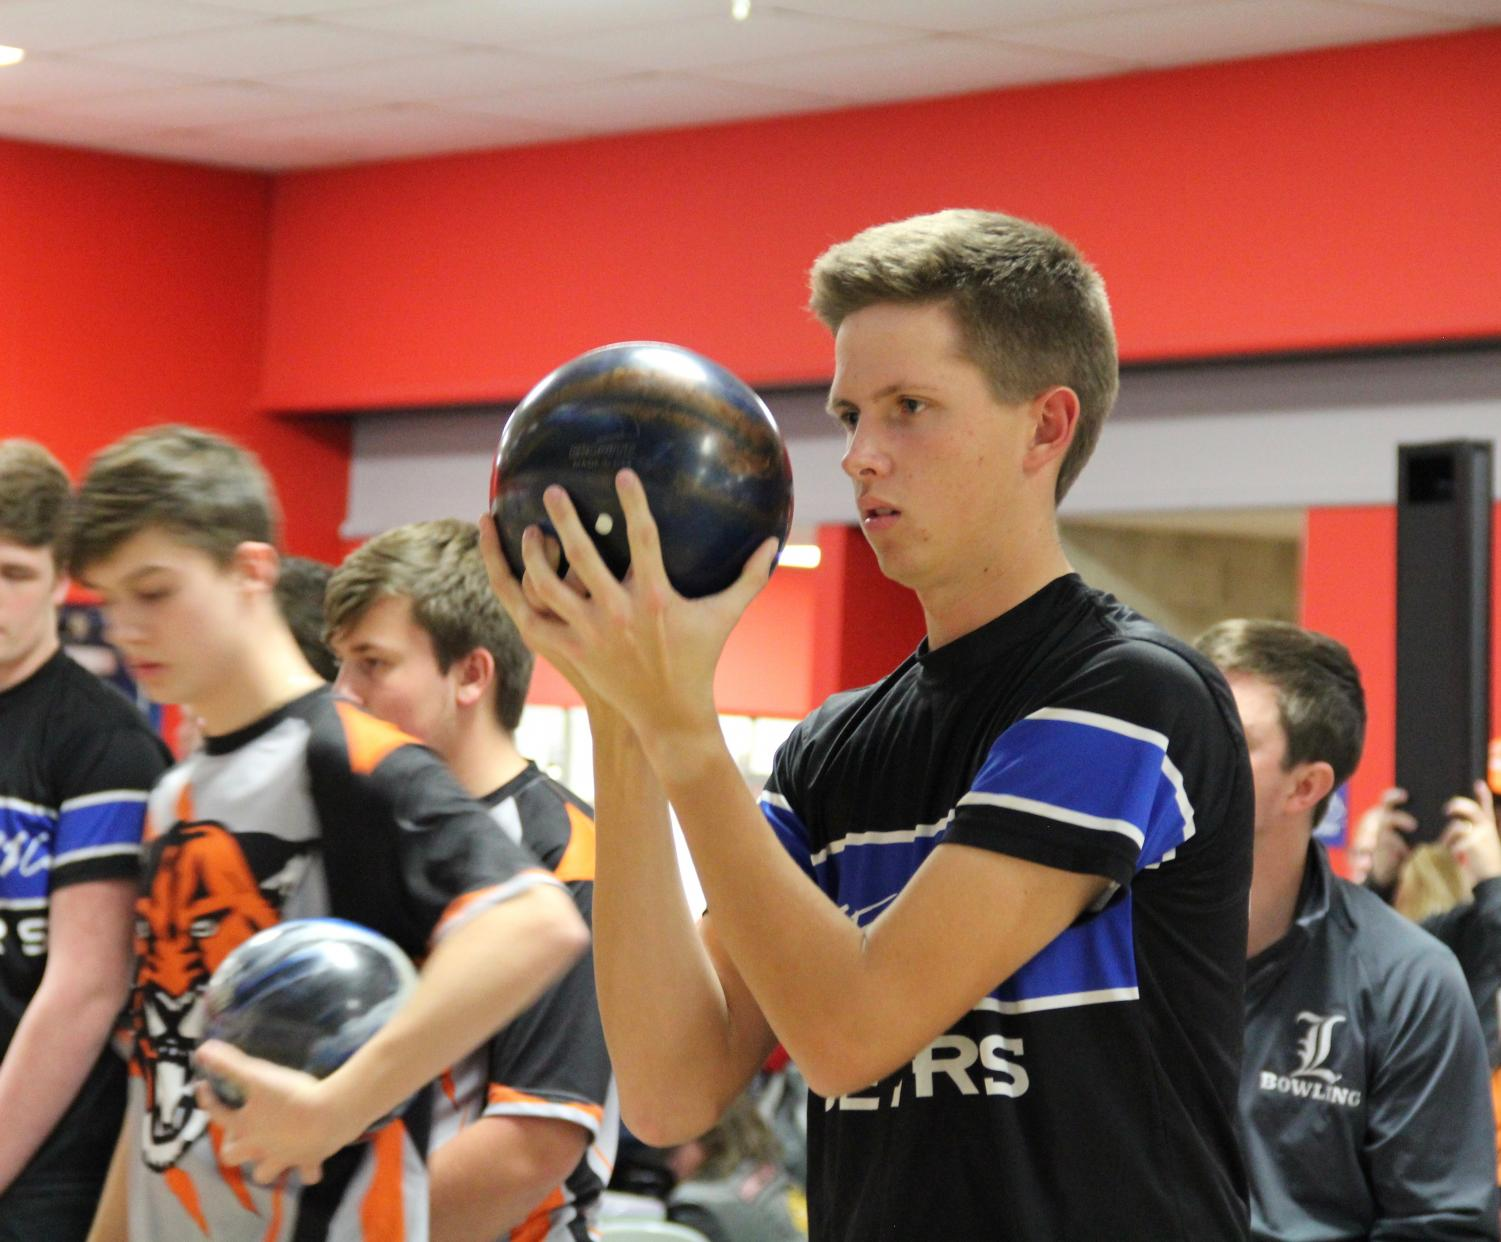 Jason Czabaj, senior, prepares to take a shot in a match. Competitive bowling requires a skill and focus some people may not recognize, according to Schnur.